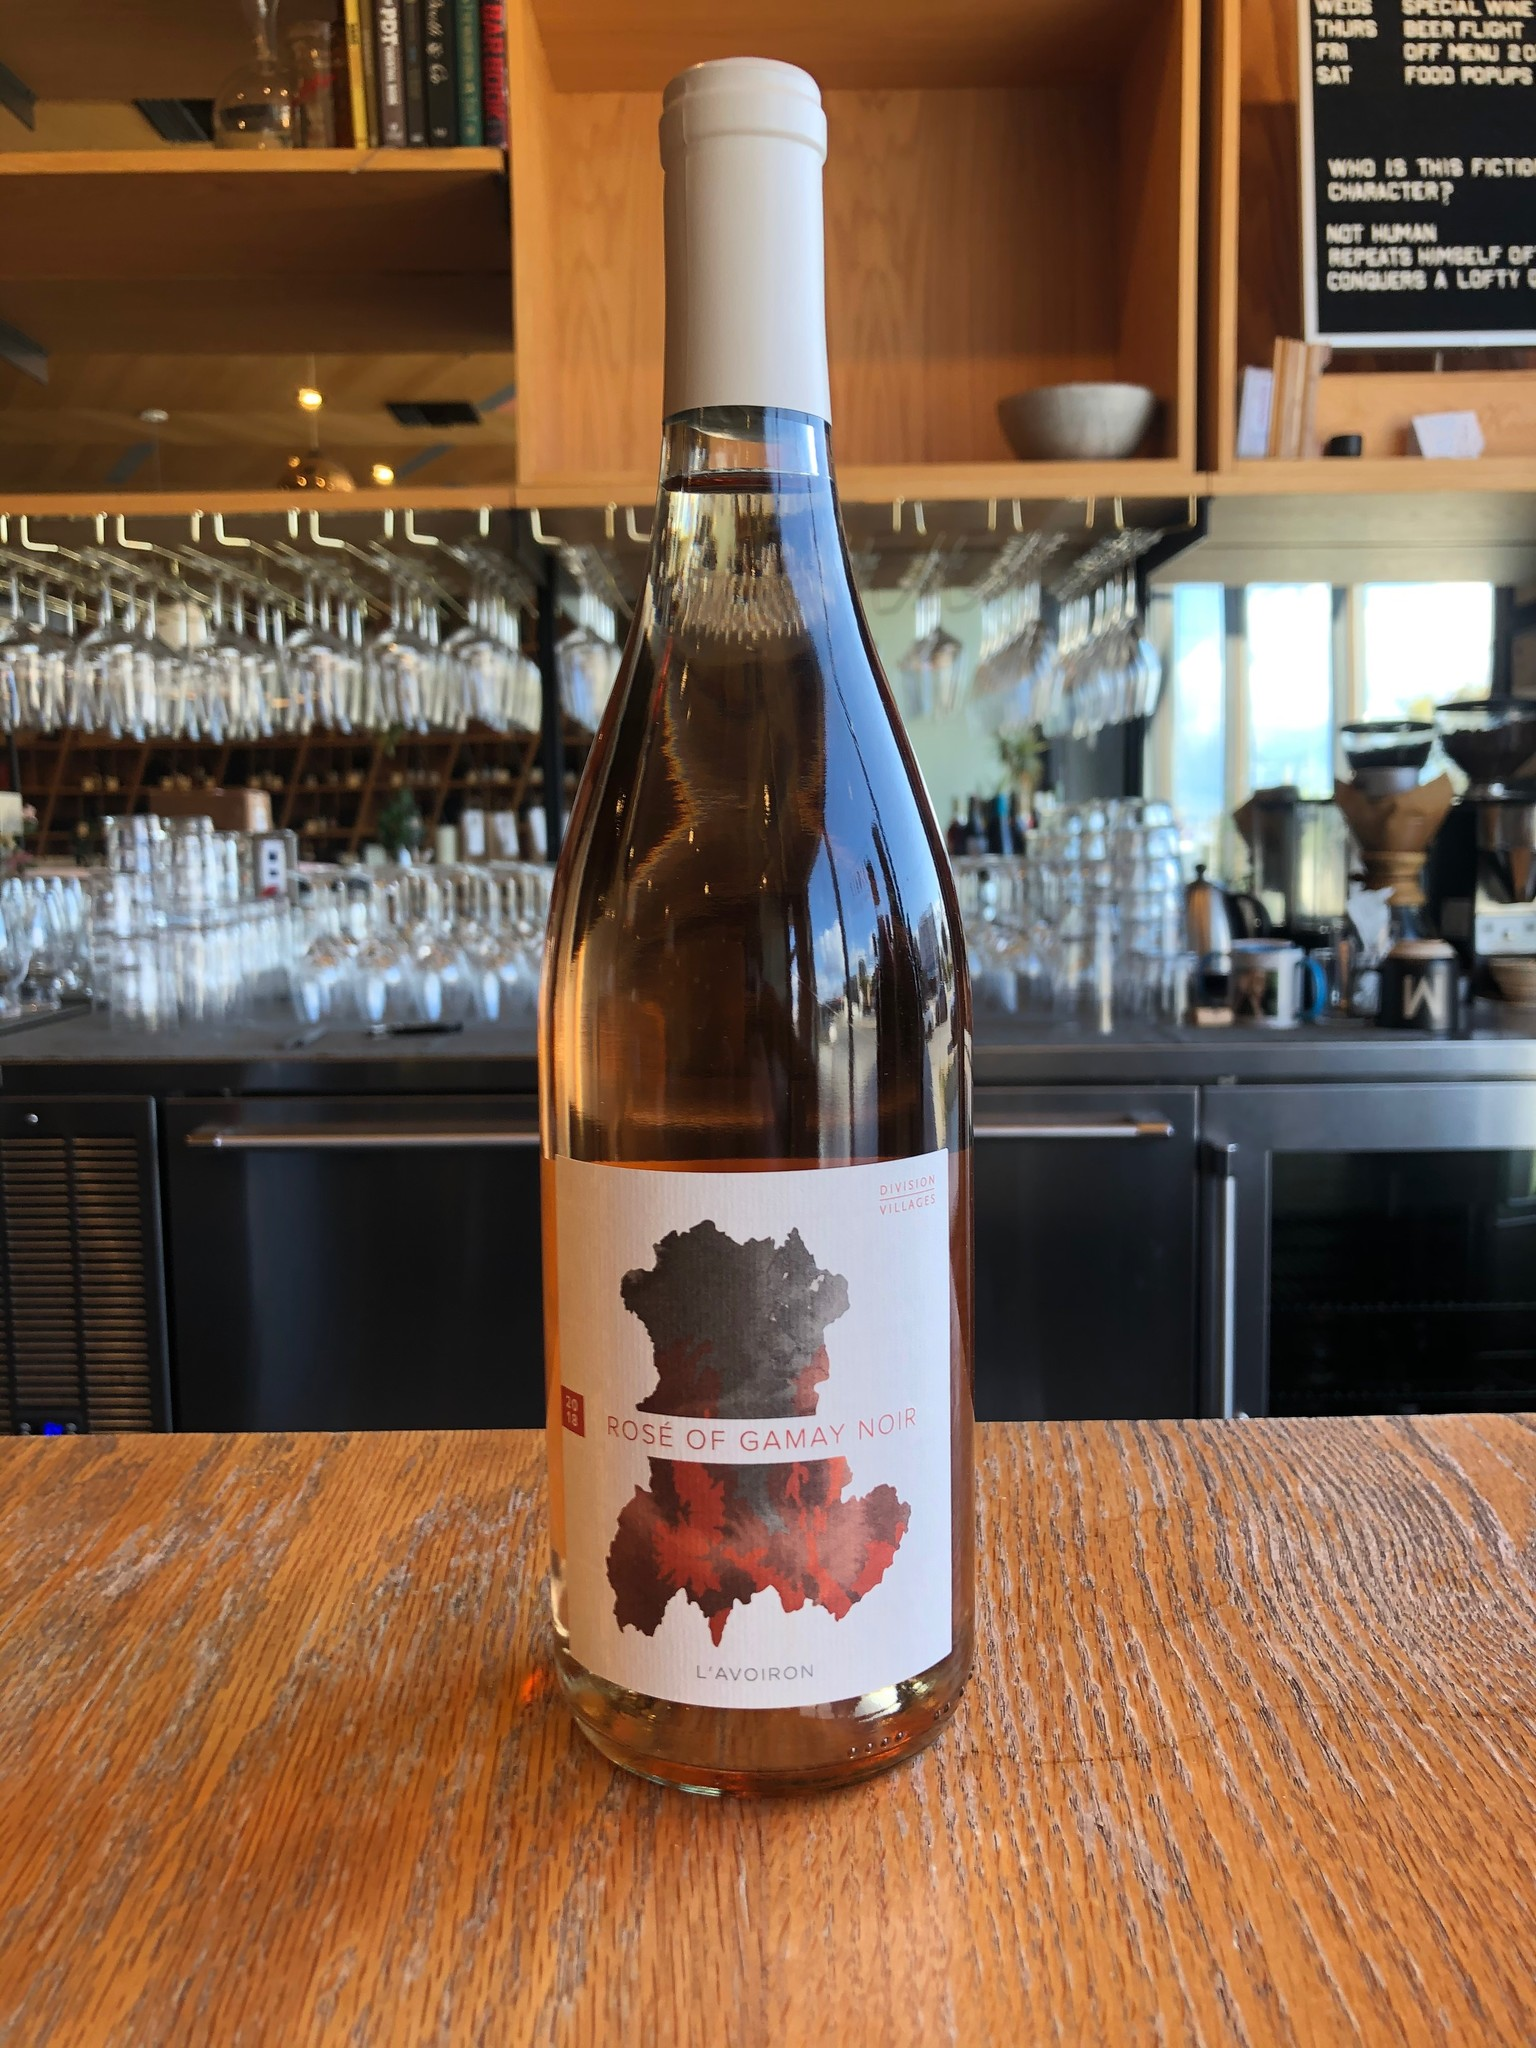 Division Winemaking Company 2018 Division Winemaking Co. 'Division-Villages Rosé Gamay Noir L'Avoiron' 750ml